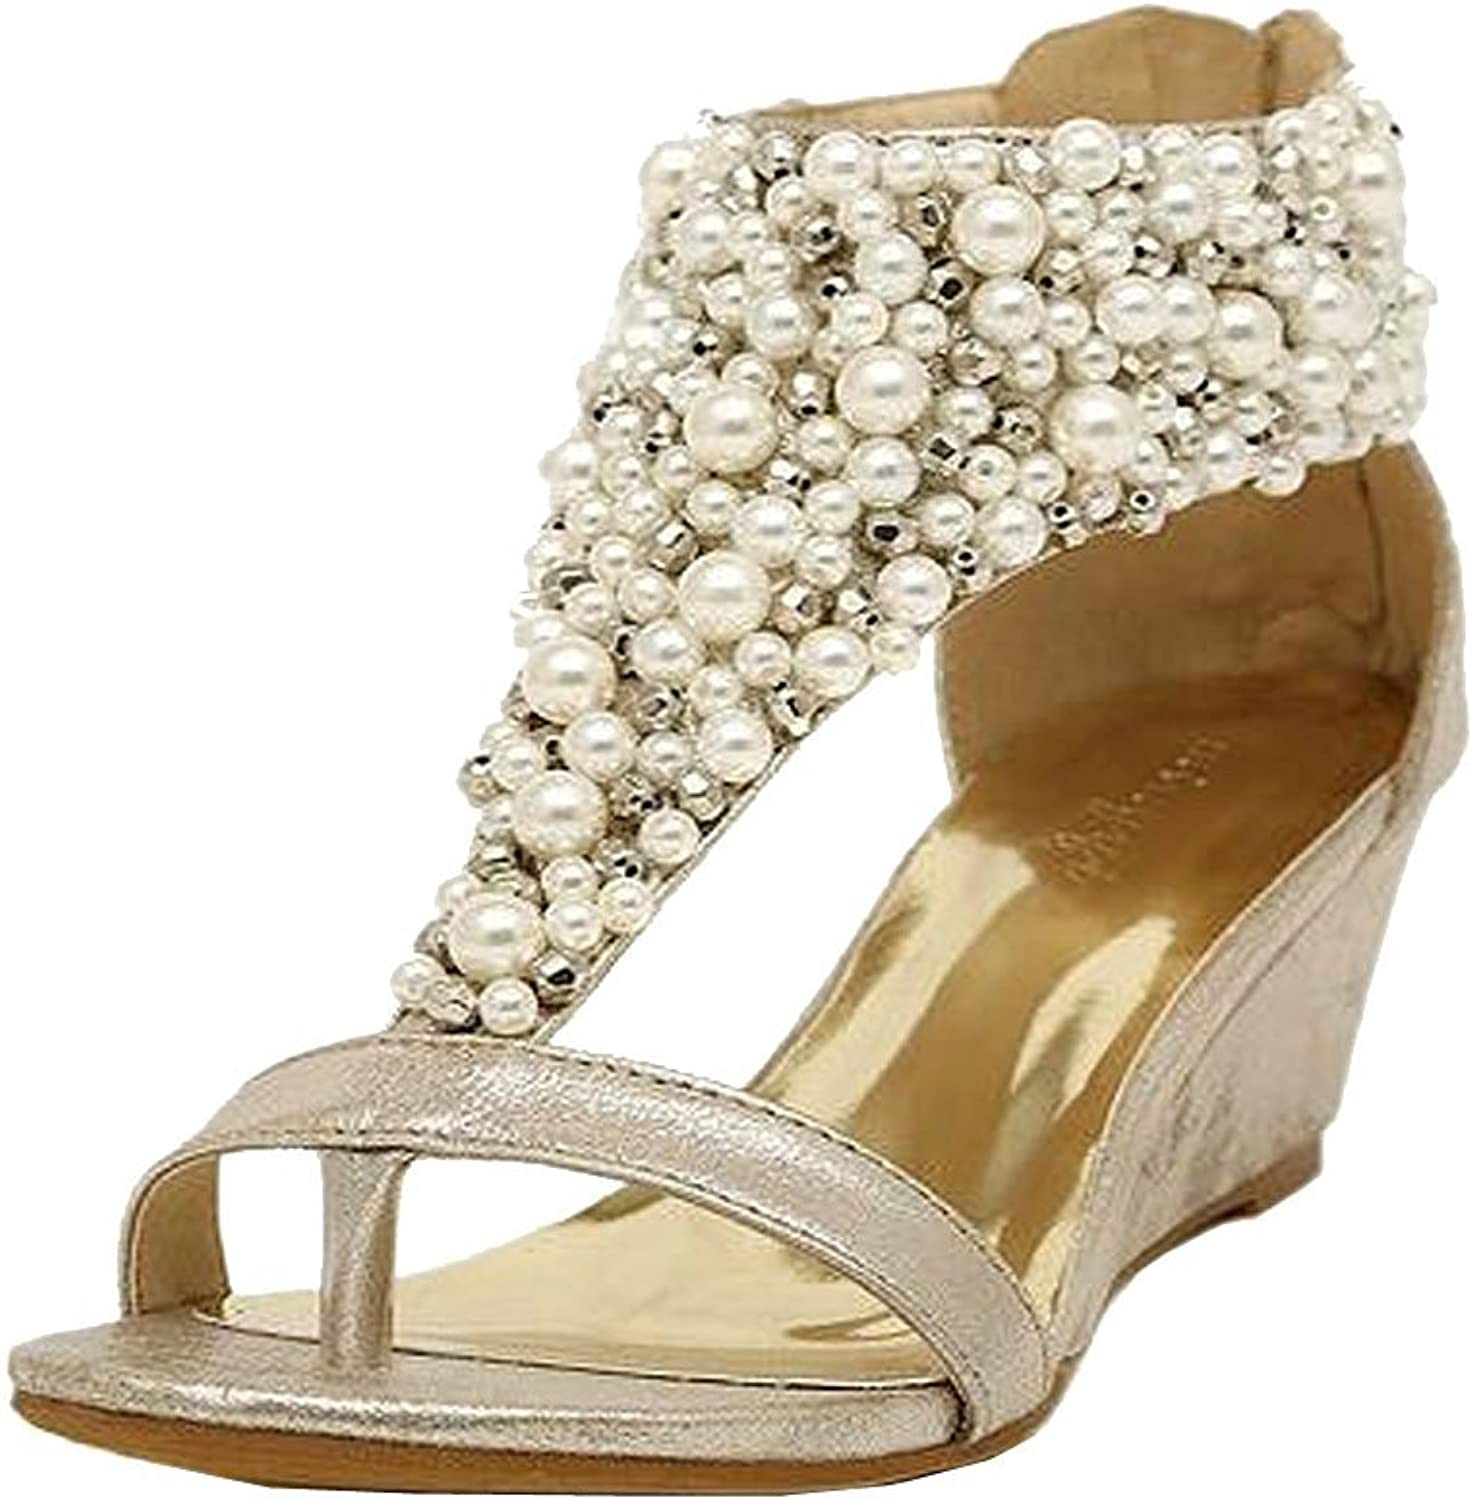 Getmorebeauty Women's Ankle Strappy Across Pearls Peep Toes Zipped Sandals